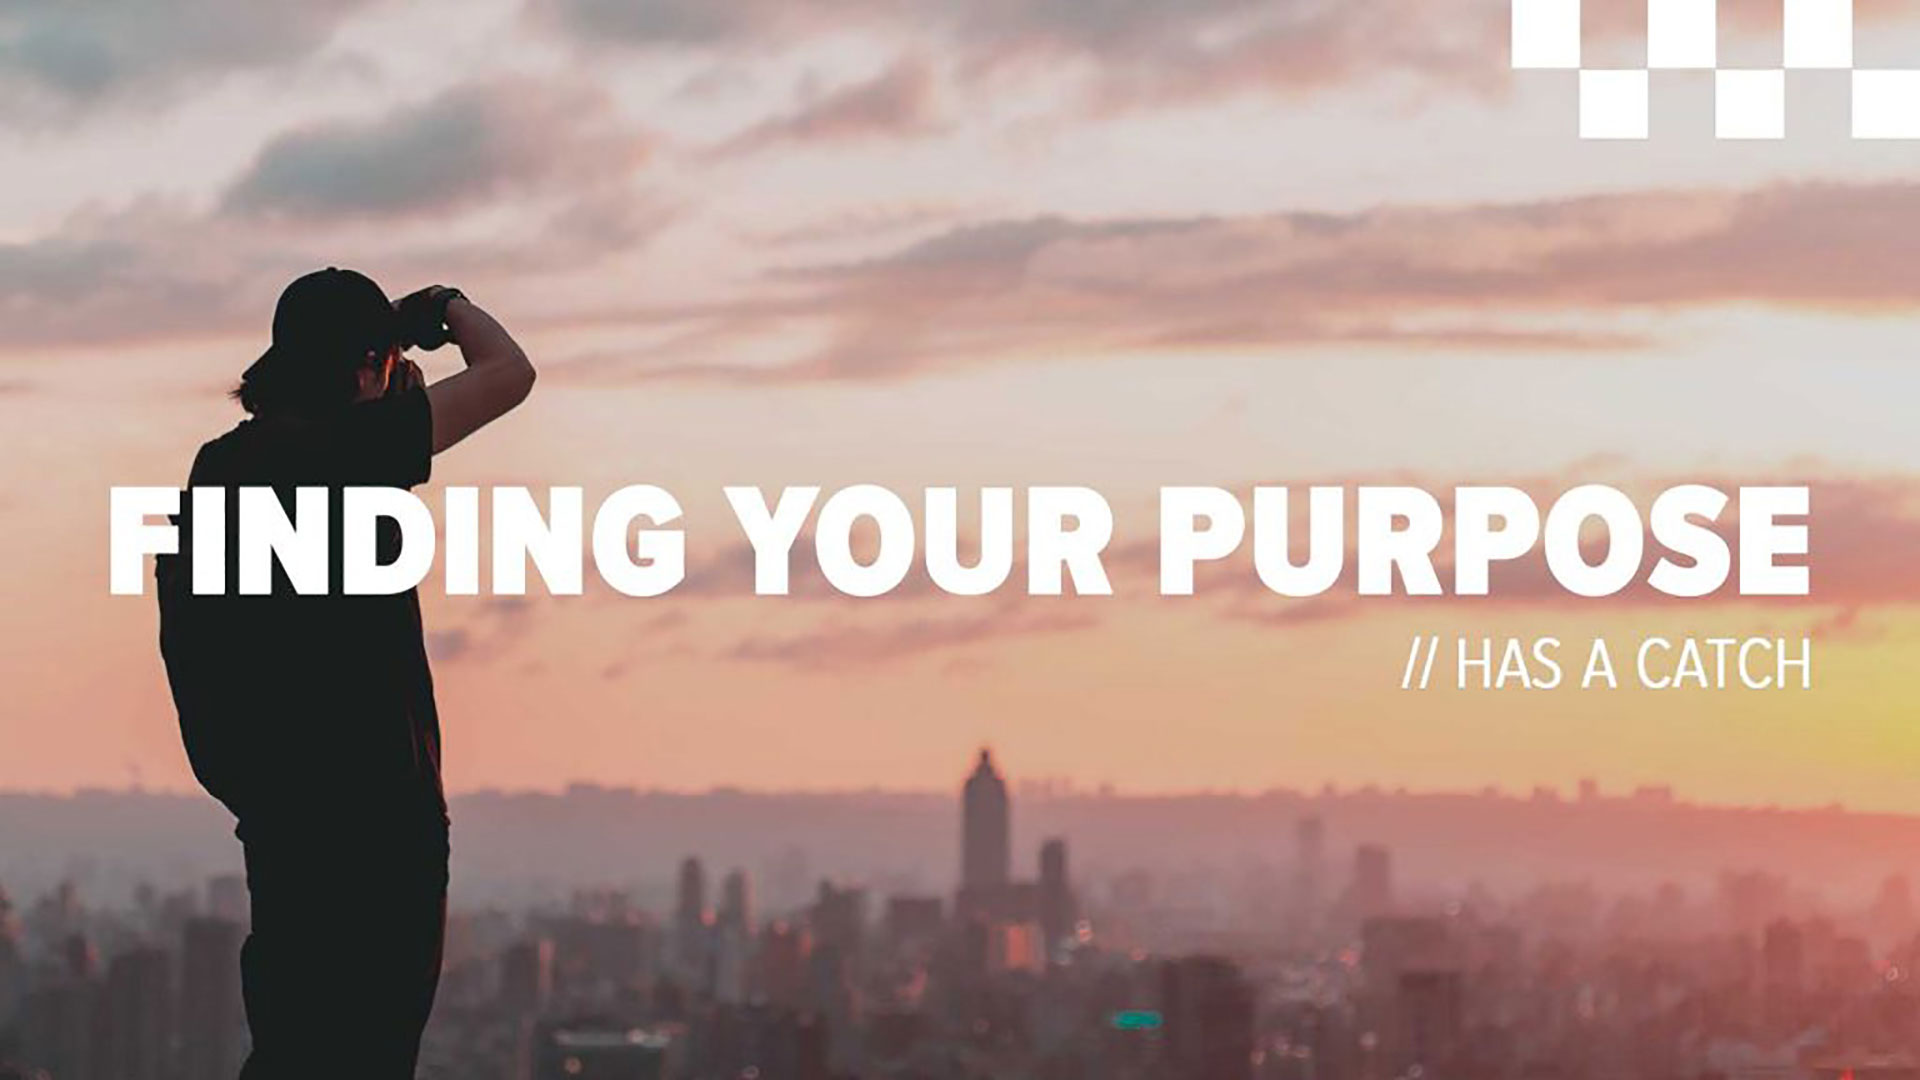 Series: Finding Your Purpose